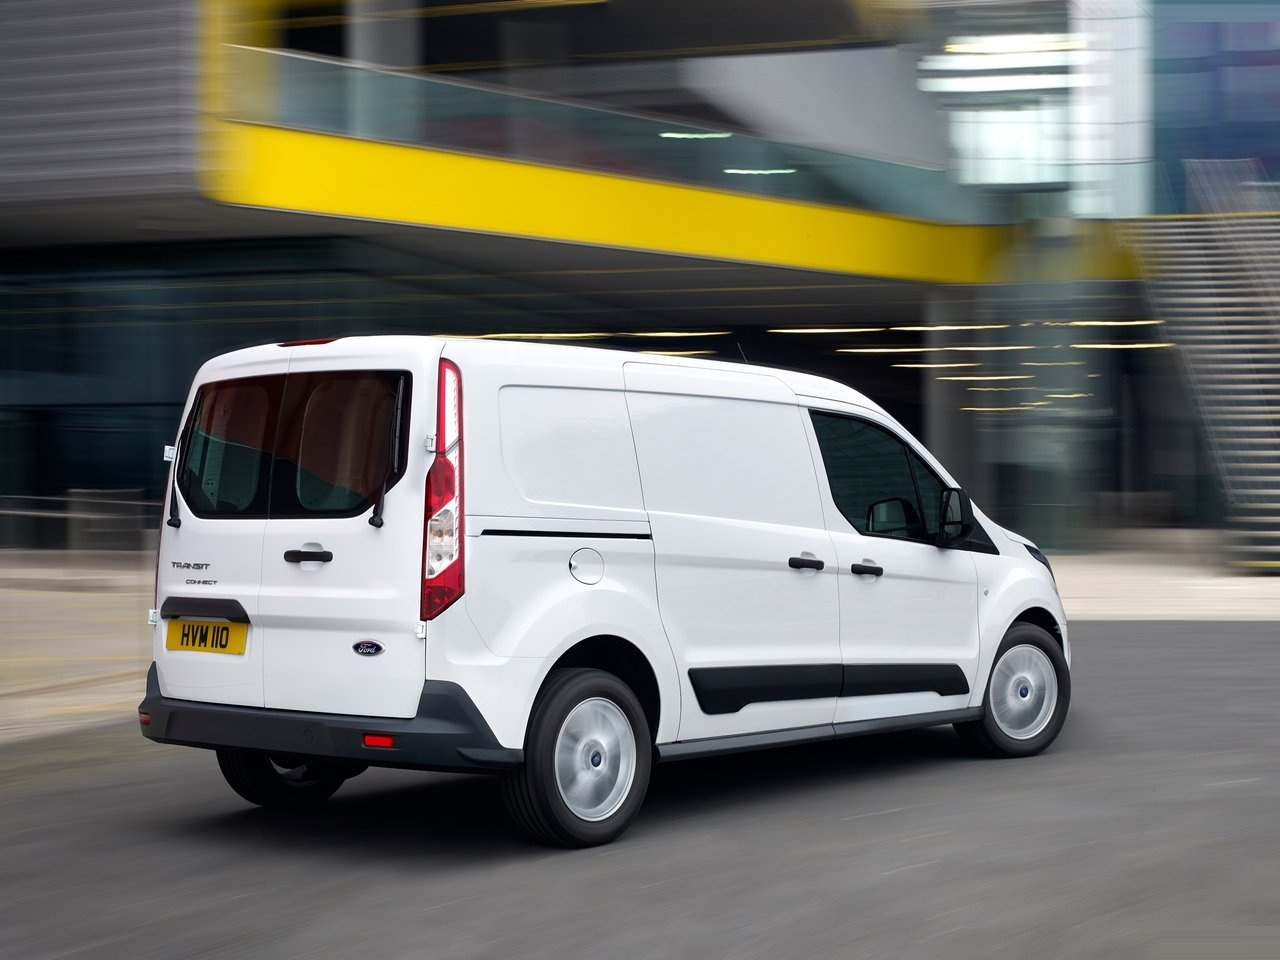 2014 Ford Transit Connect Wallpapers free download image